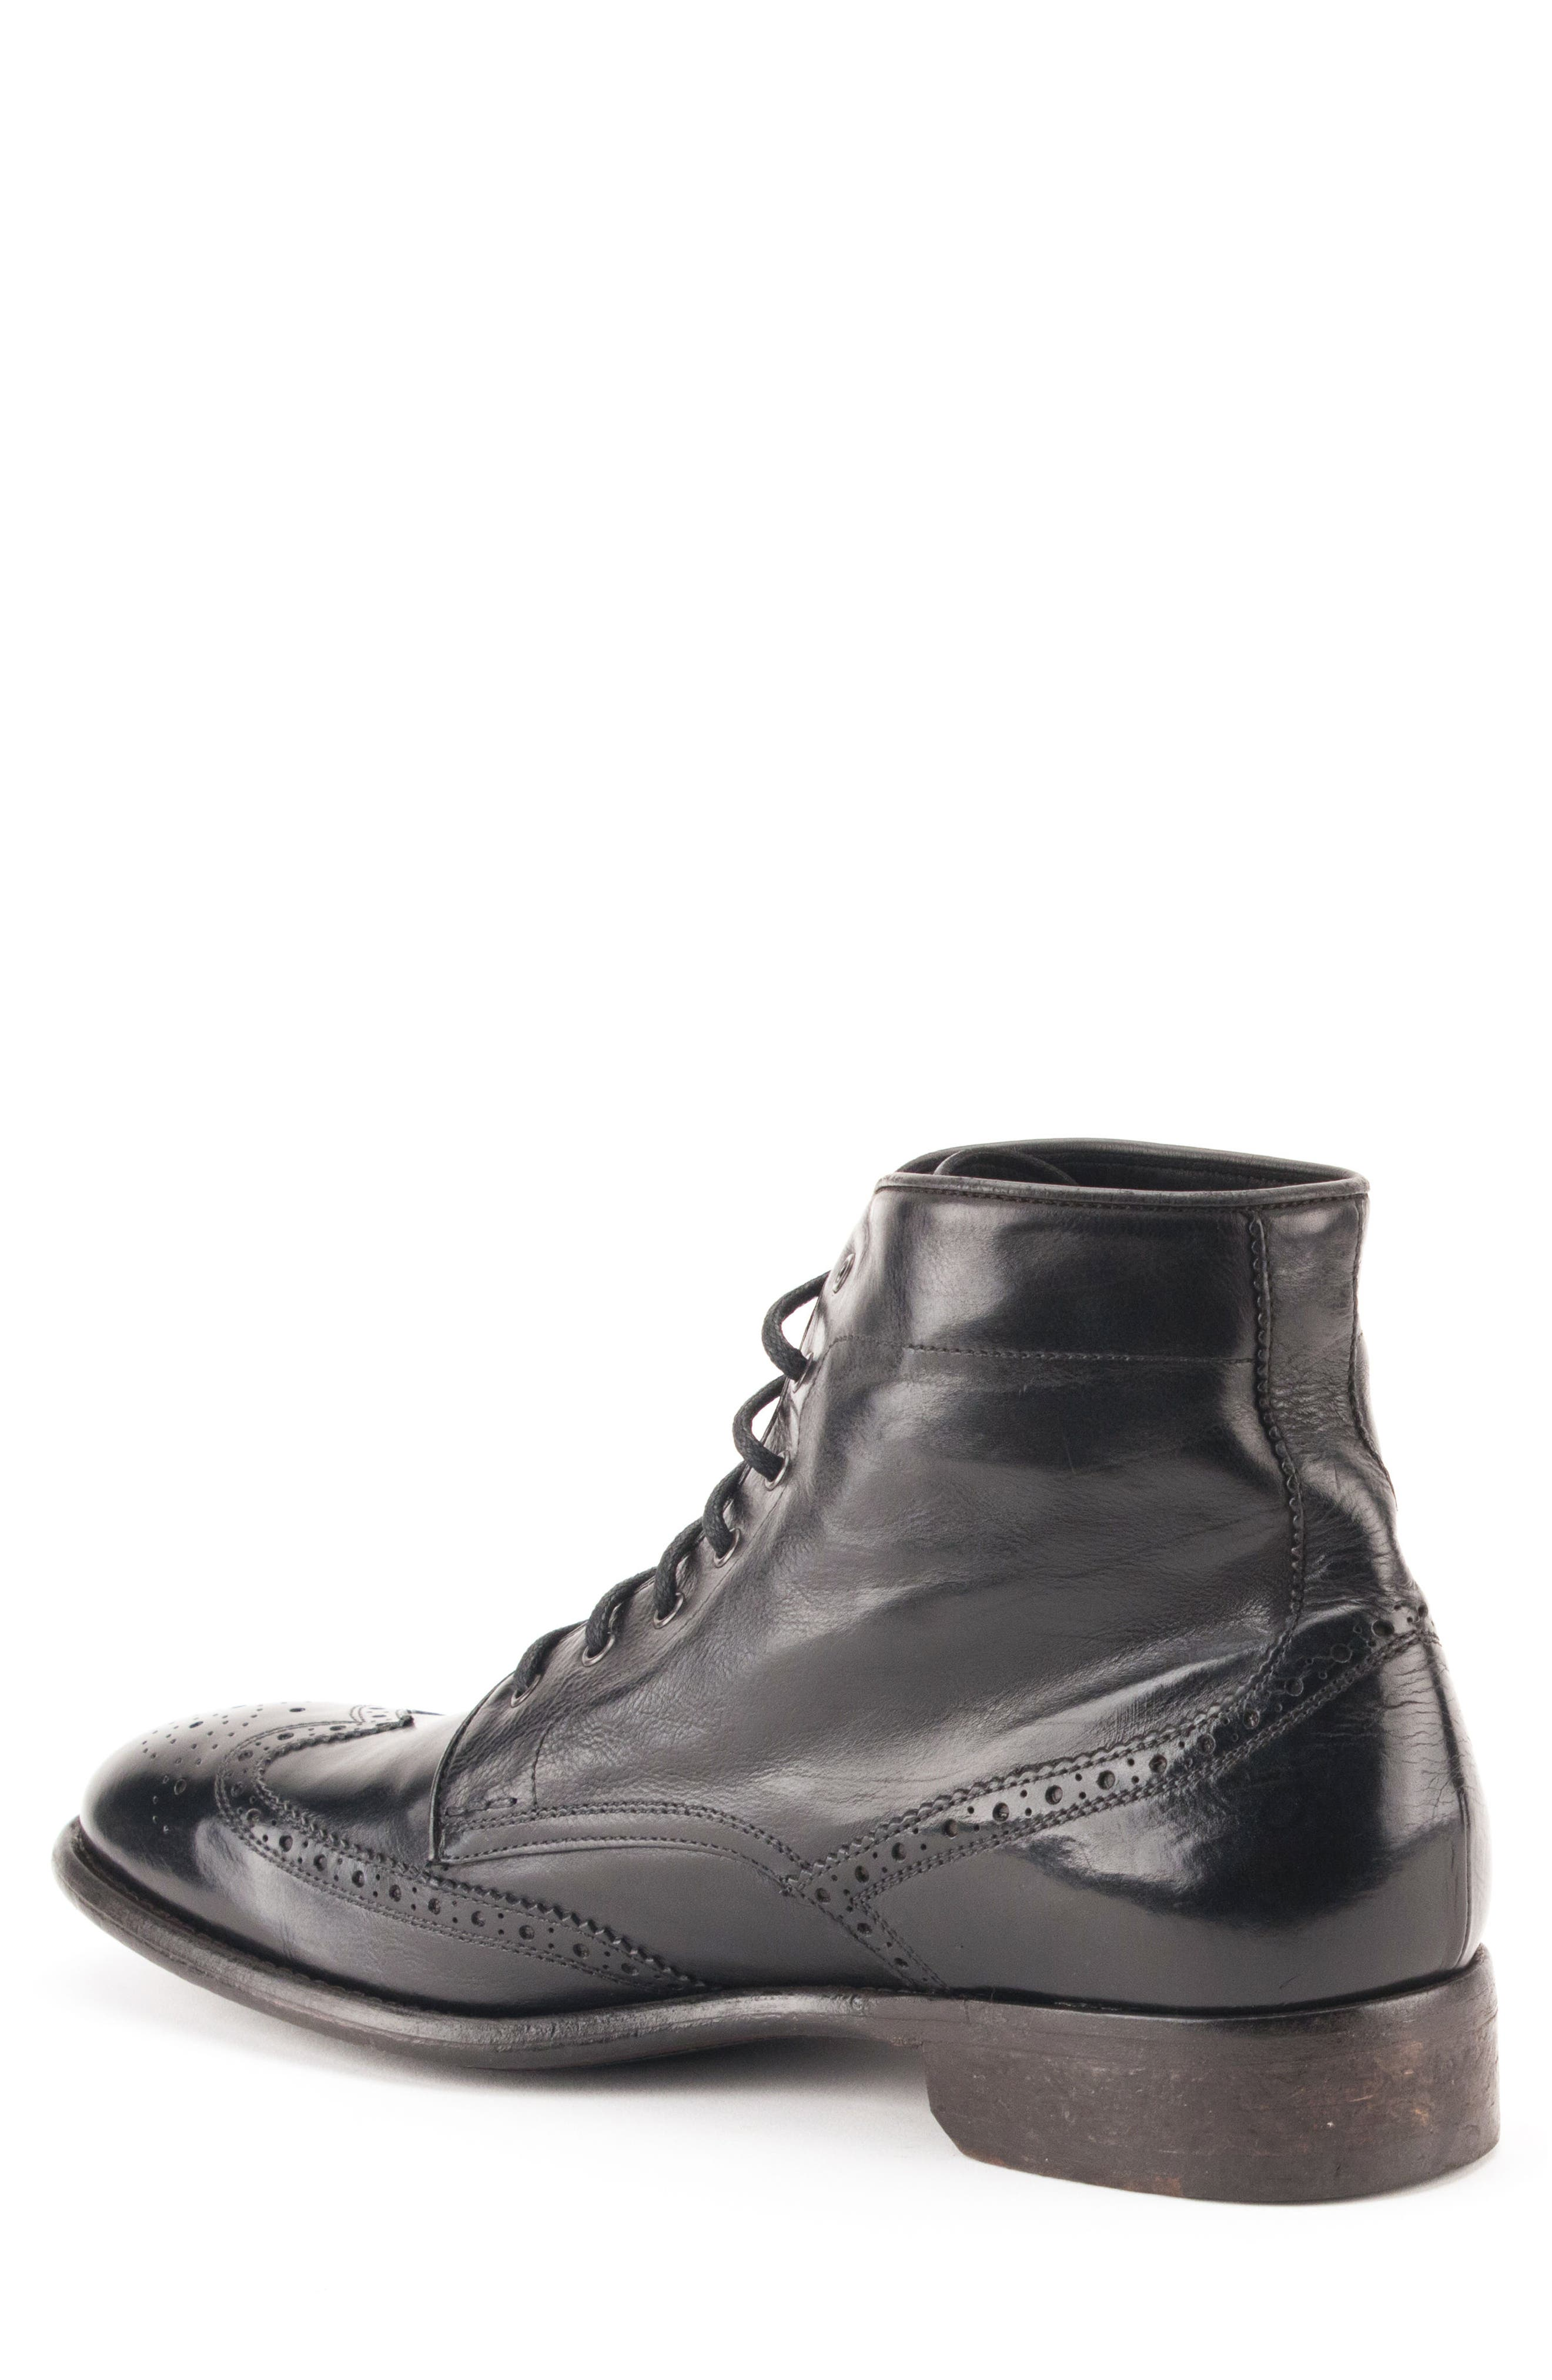 Maxfield Wingtip Boot,                             Alternate thumbnail 2, color,                             BLACK LEATHER